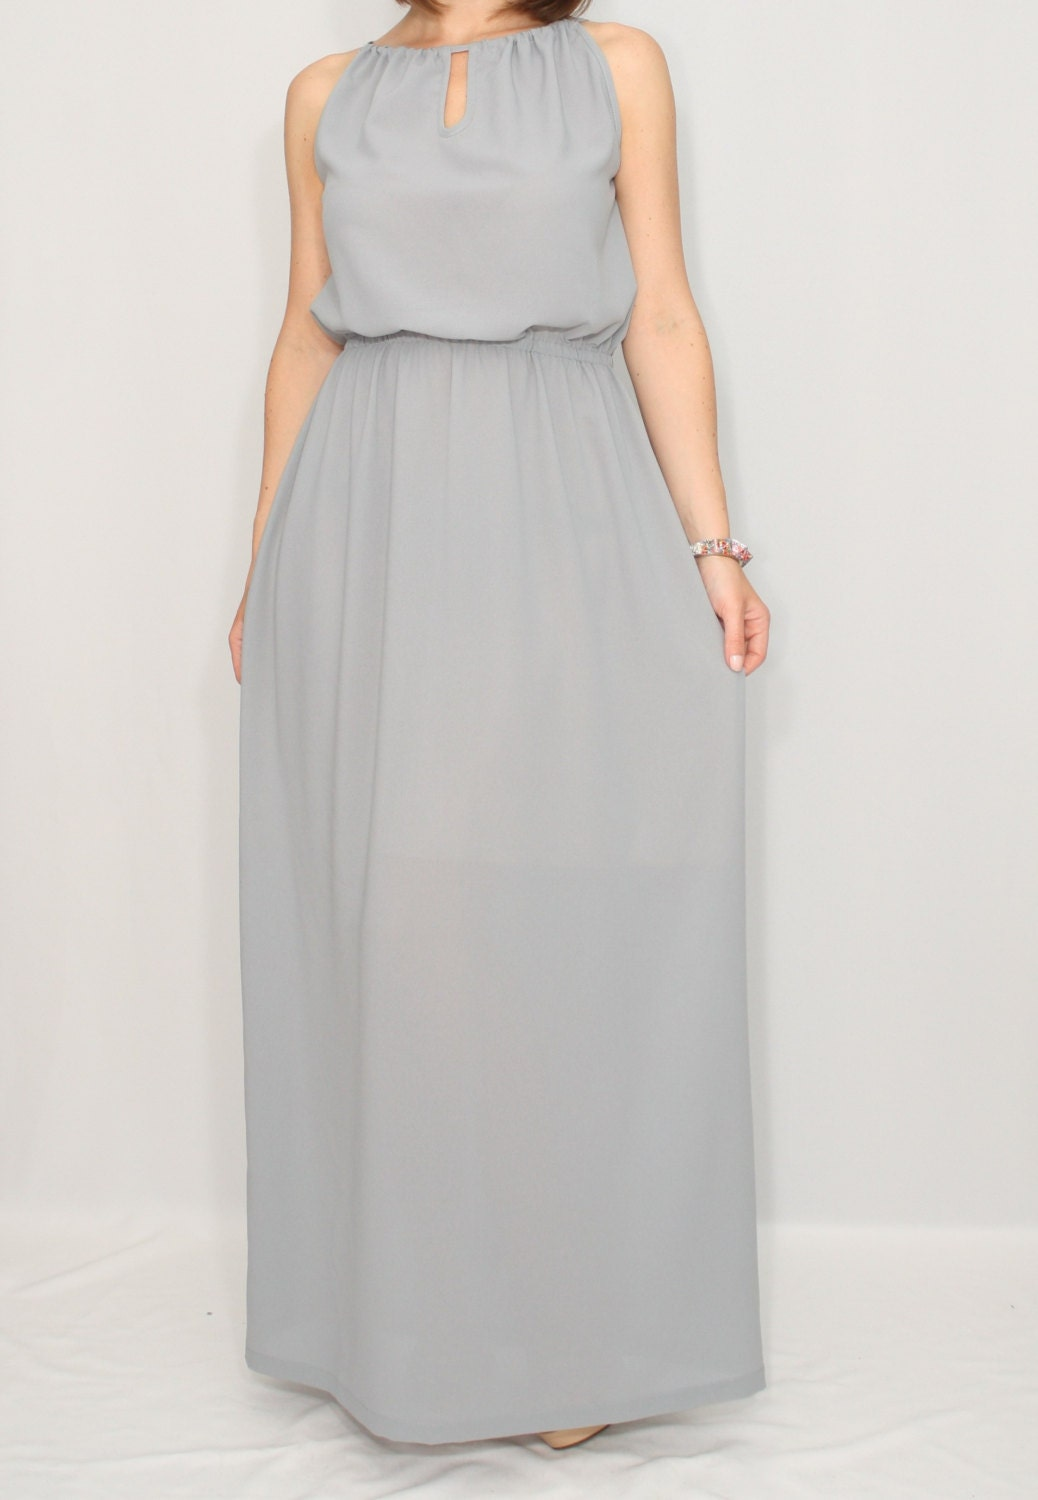 Light grey long dress bridesmaid dress chiffon dress prom for Light grey wedding dress